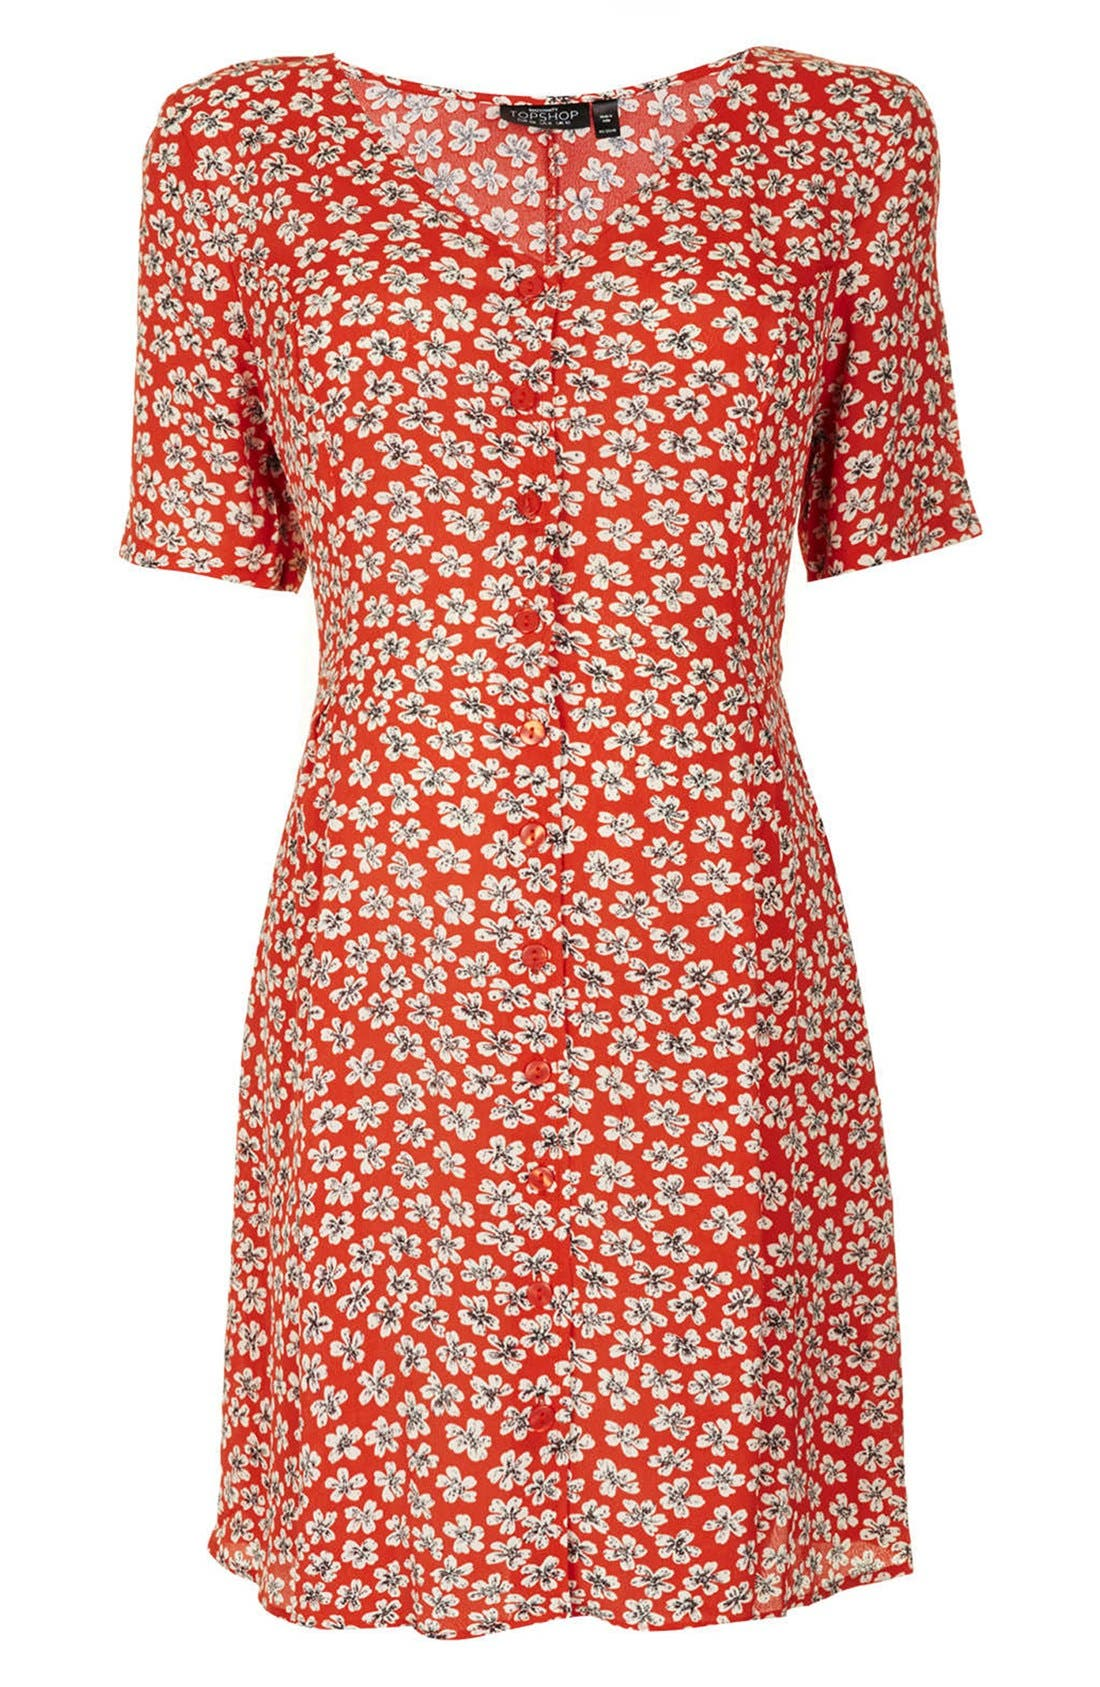 Alternate Image 1 Selected - Topshop 'Daisy' Floral Maternity Tea Dress